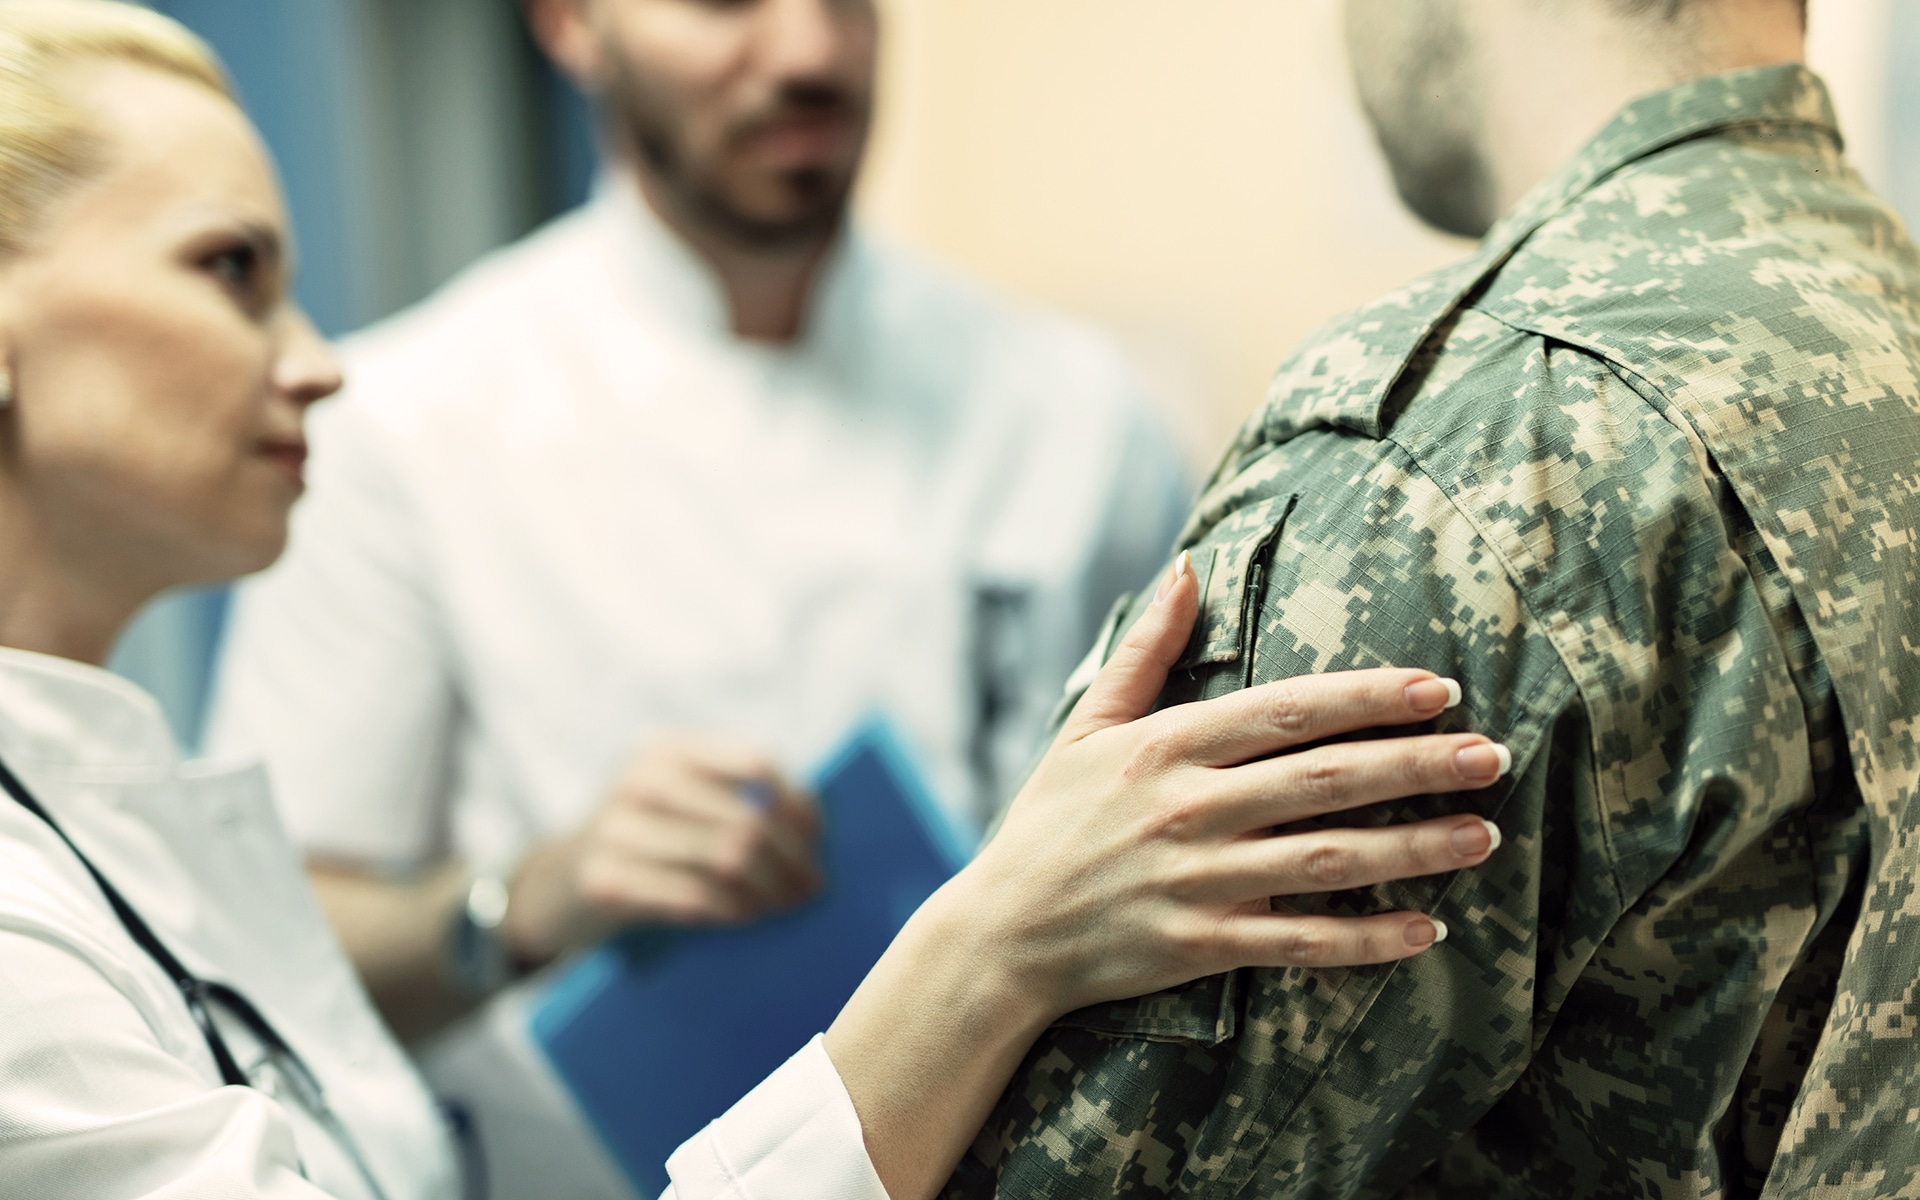 A female doctors pats the shoulder of a veteran while another doctor looks on.